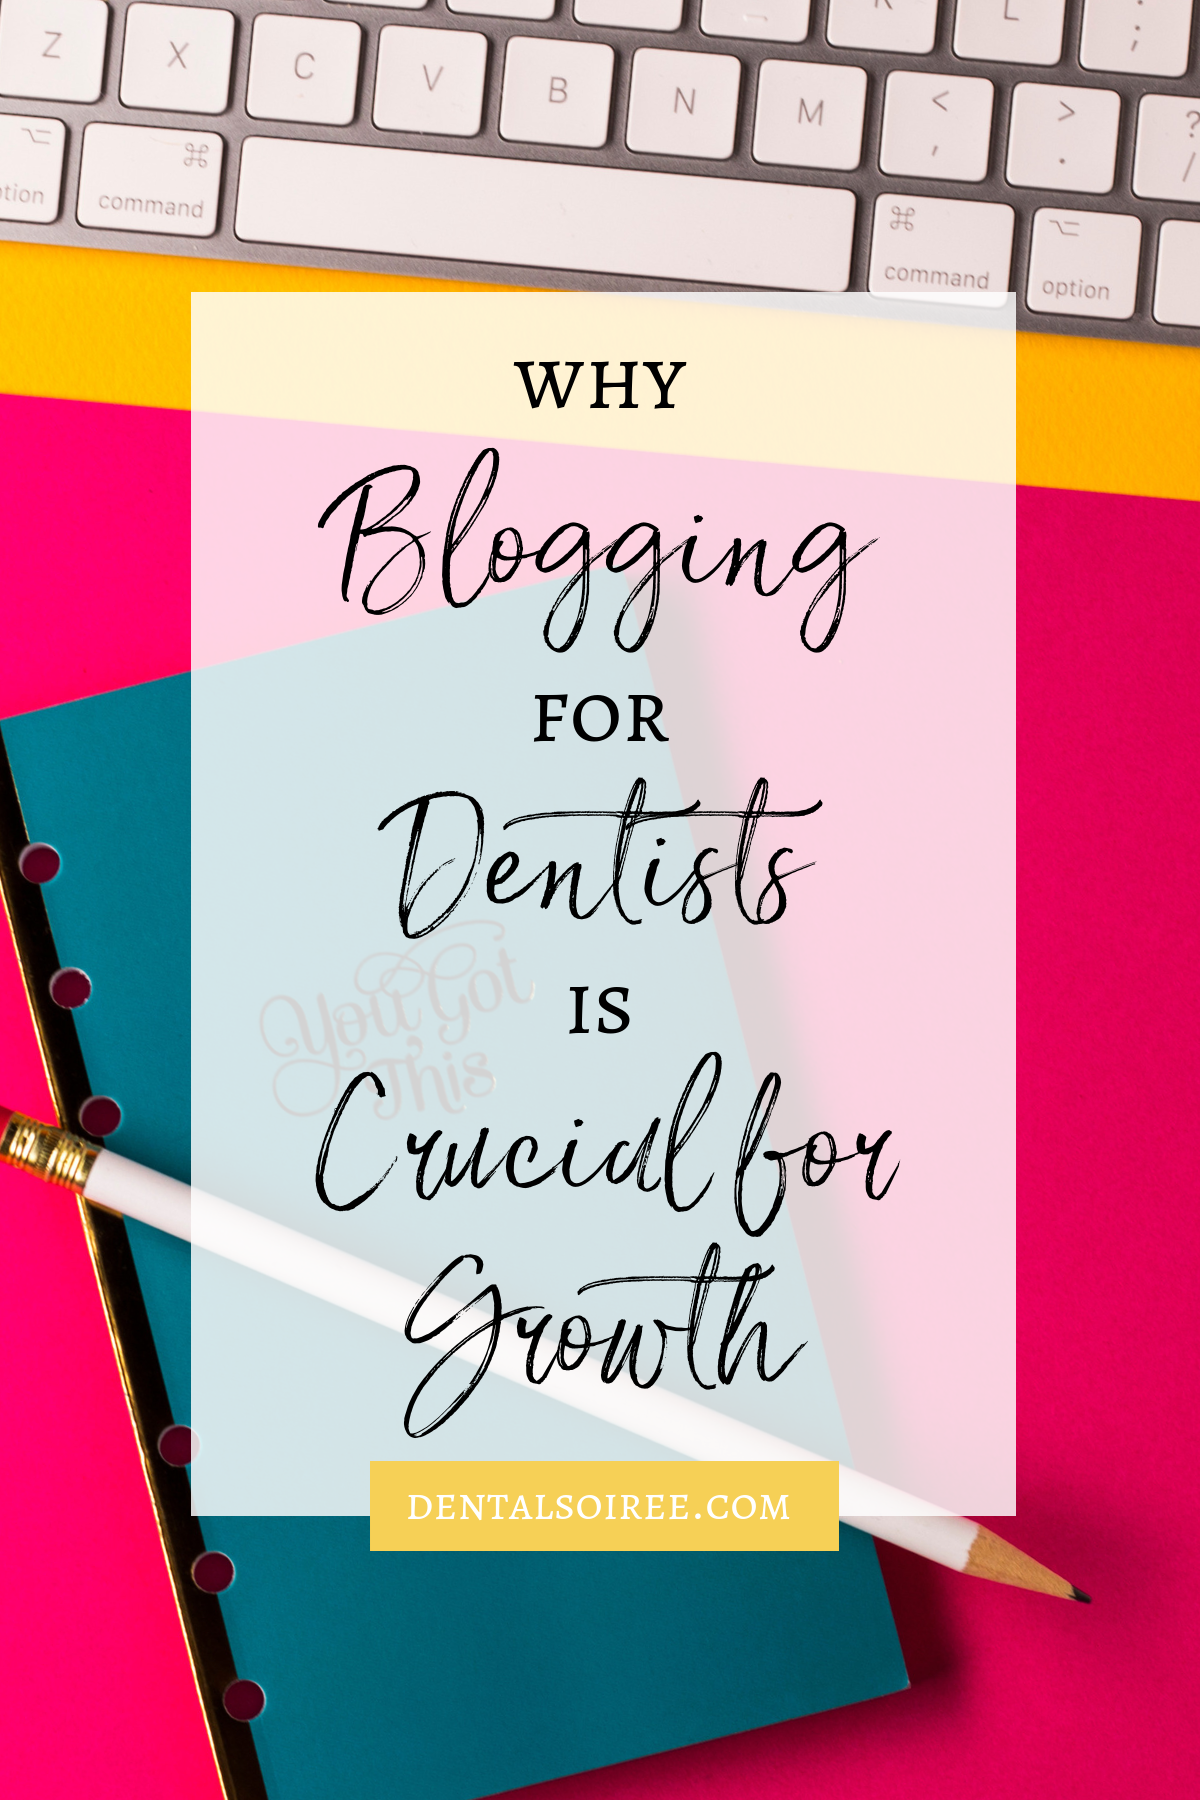 Why Blogging for Dentists is Crucial for Growth